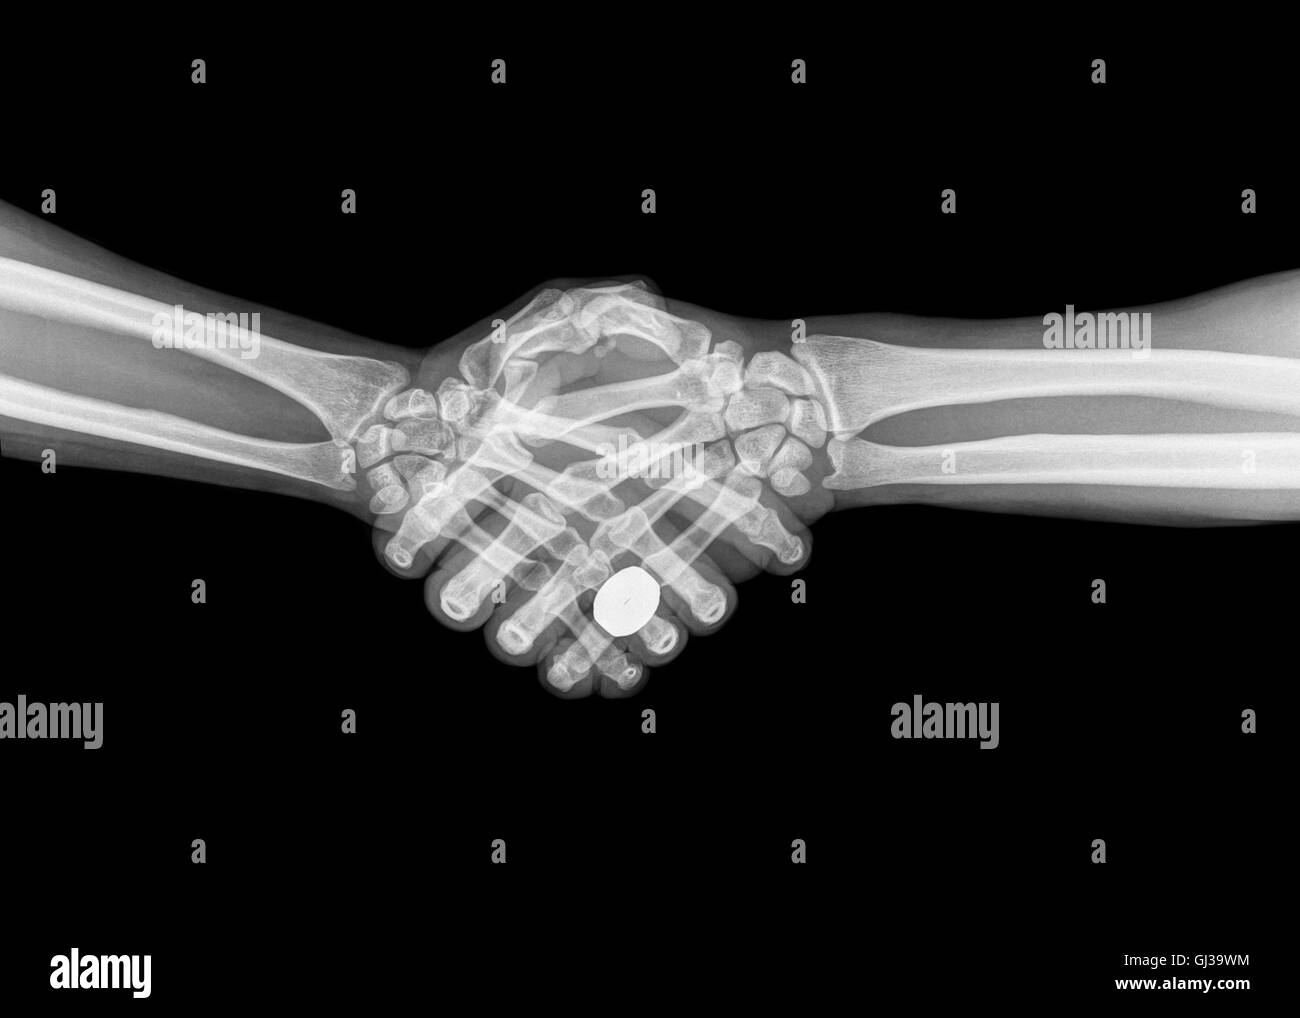 X-ray of two people shaking hands on black background - Stock Image